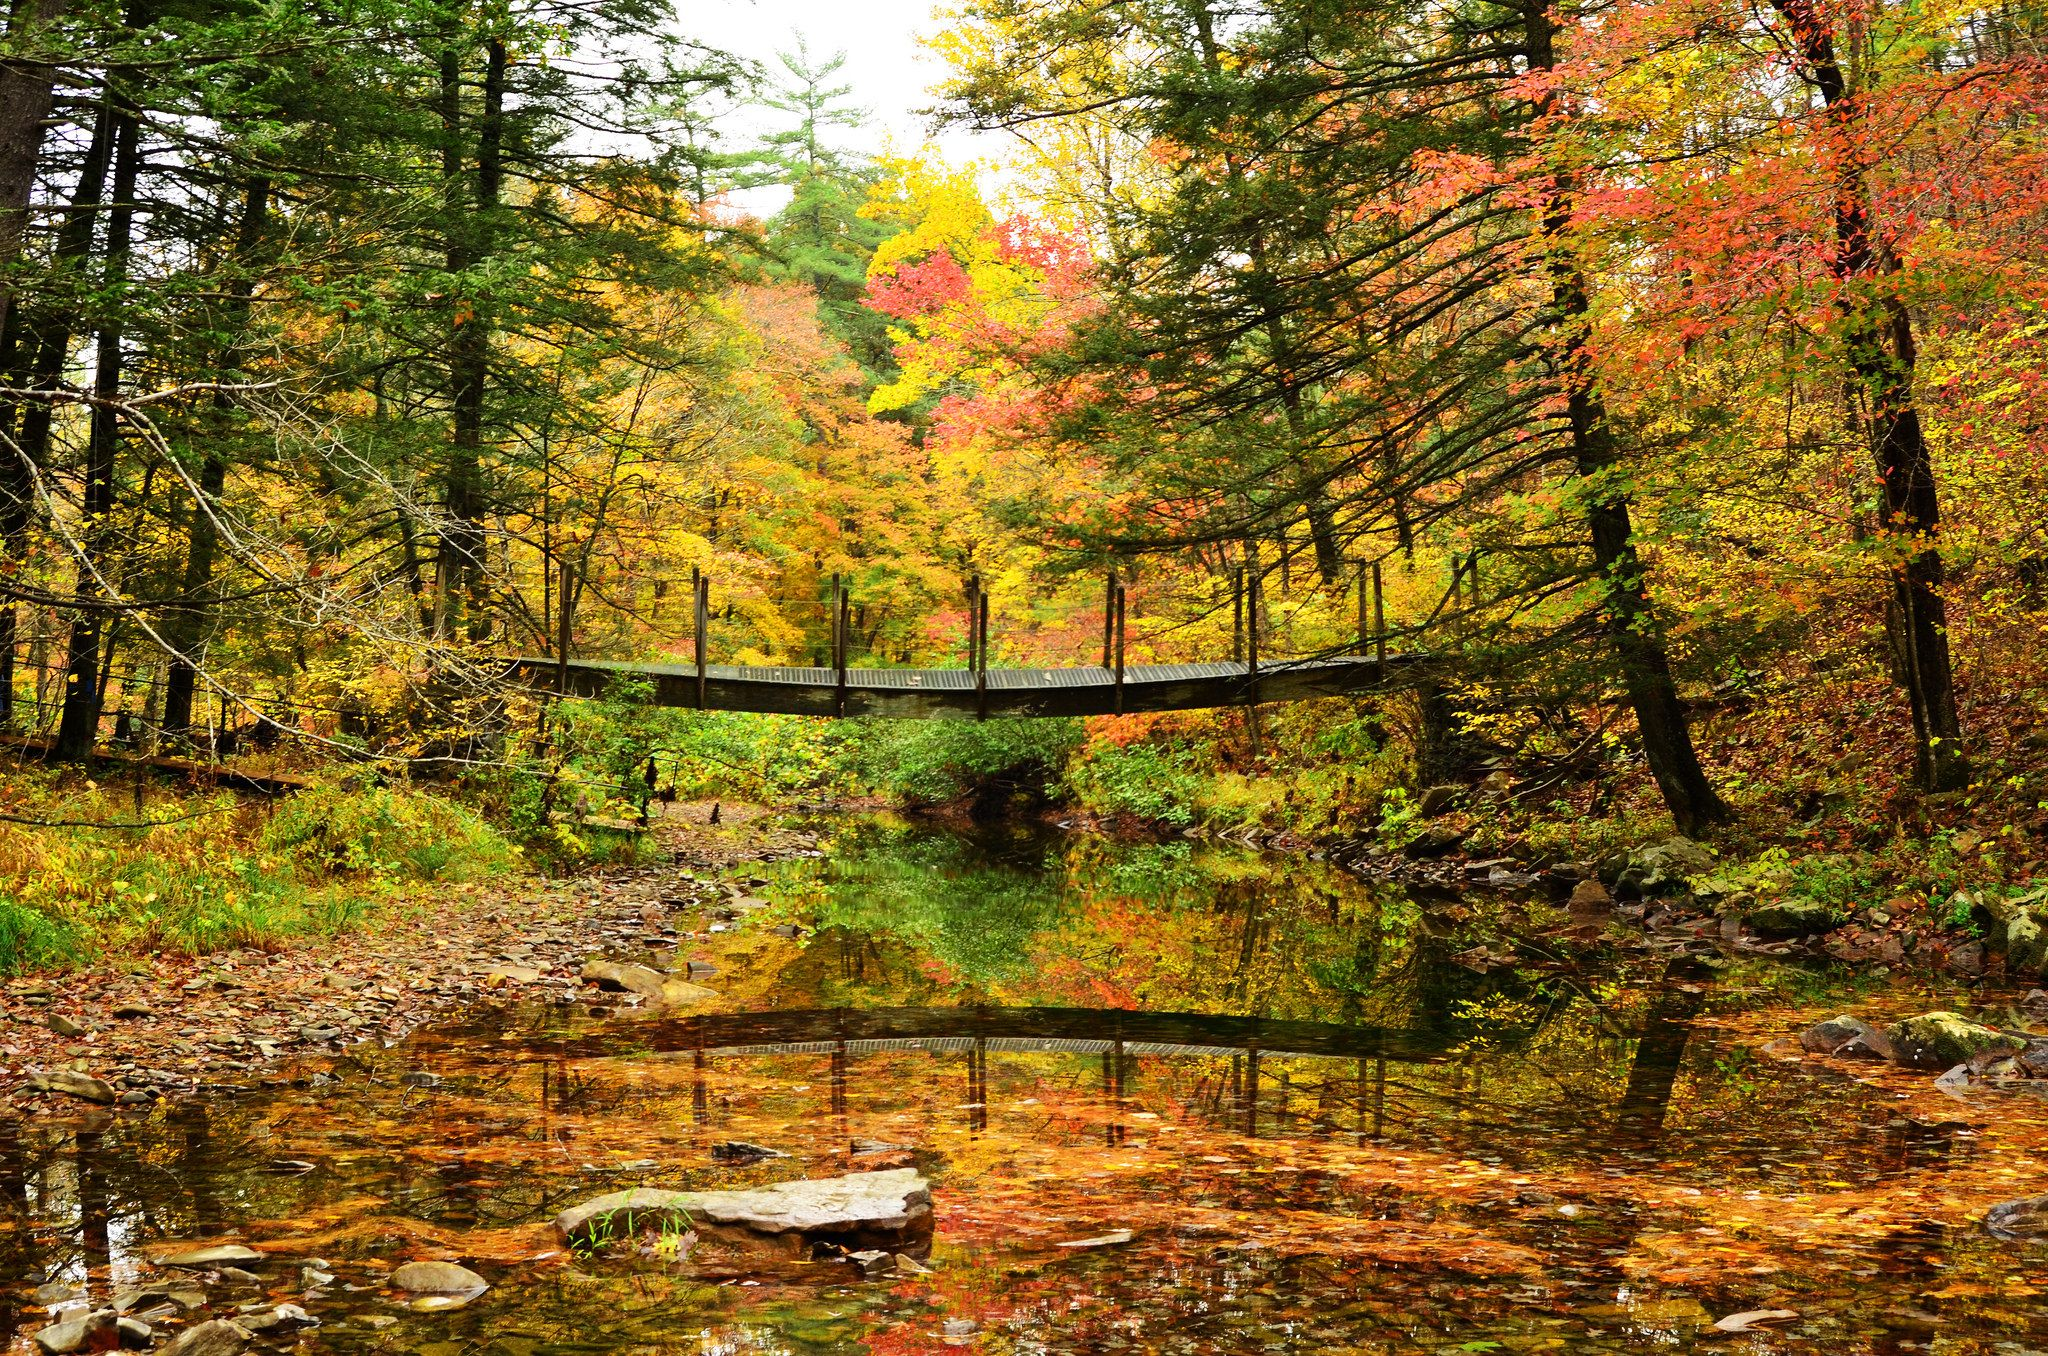 Rickety Bridge | Fifteen Mile Creek, Green Ridge State Forest, MD | Fall vacations, Scenery, Fall colors